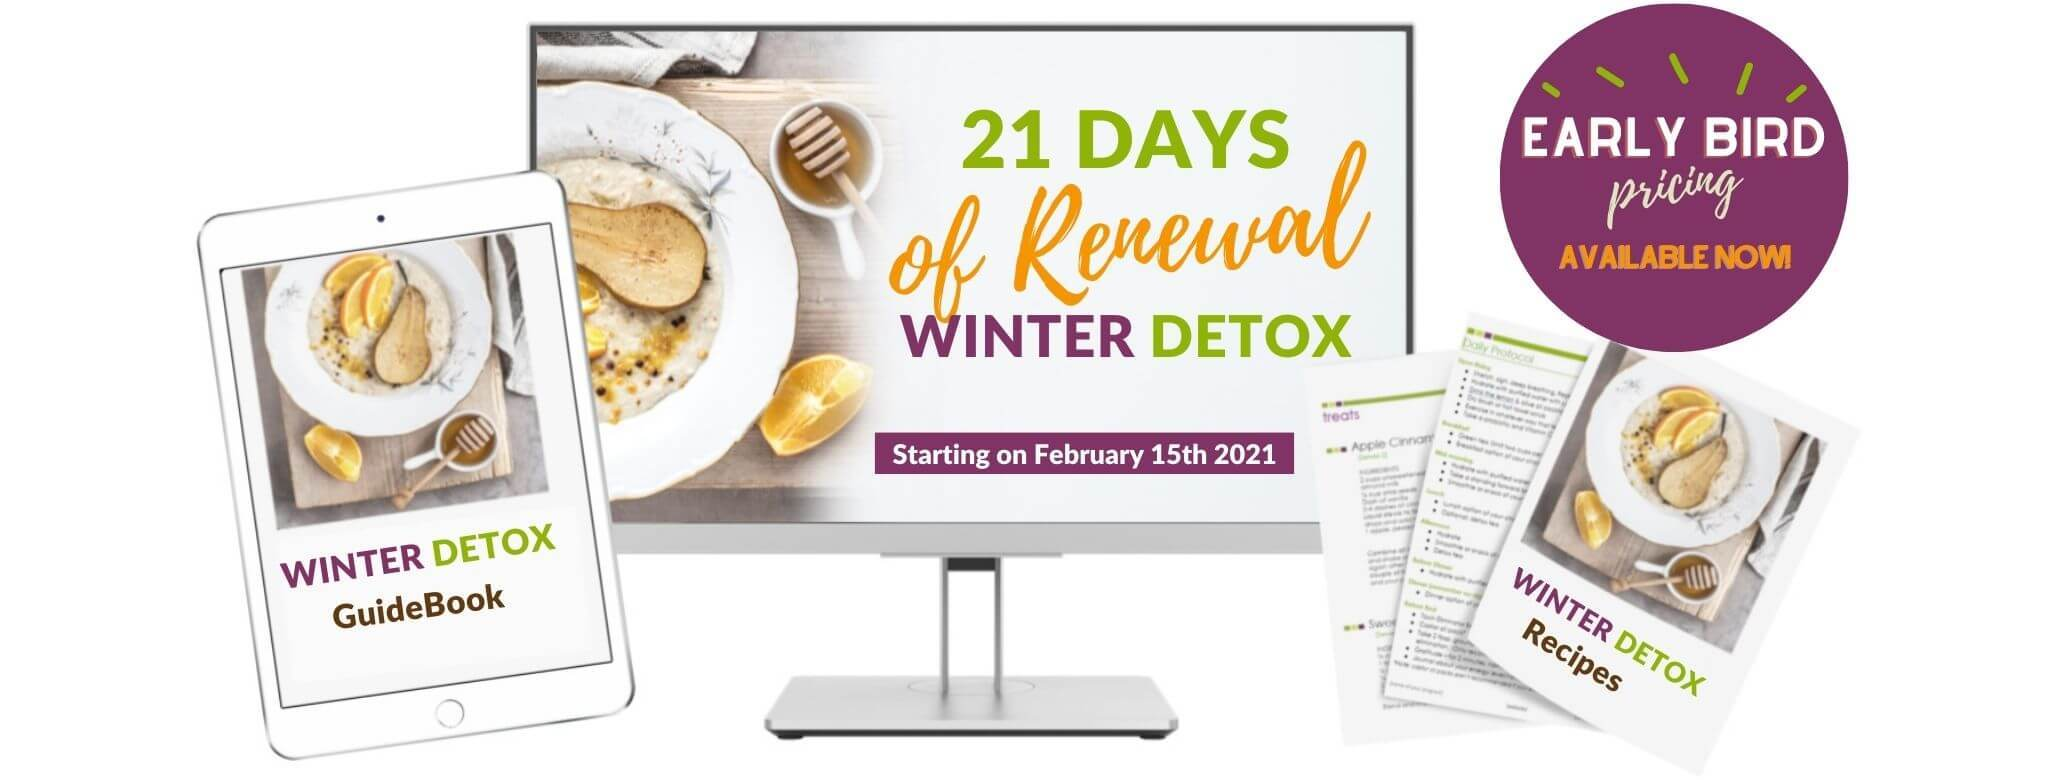 21 days of renewal winter detox monica paz nourished functional nutrition